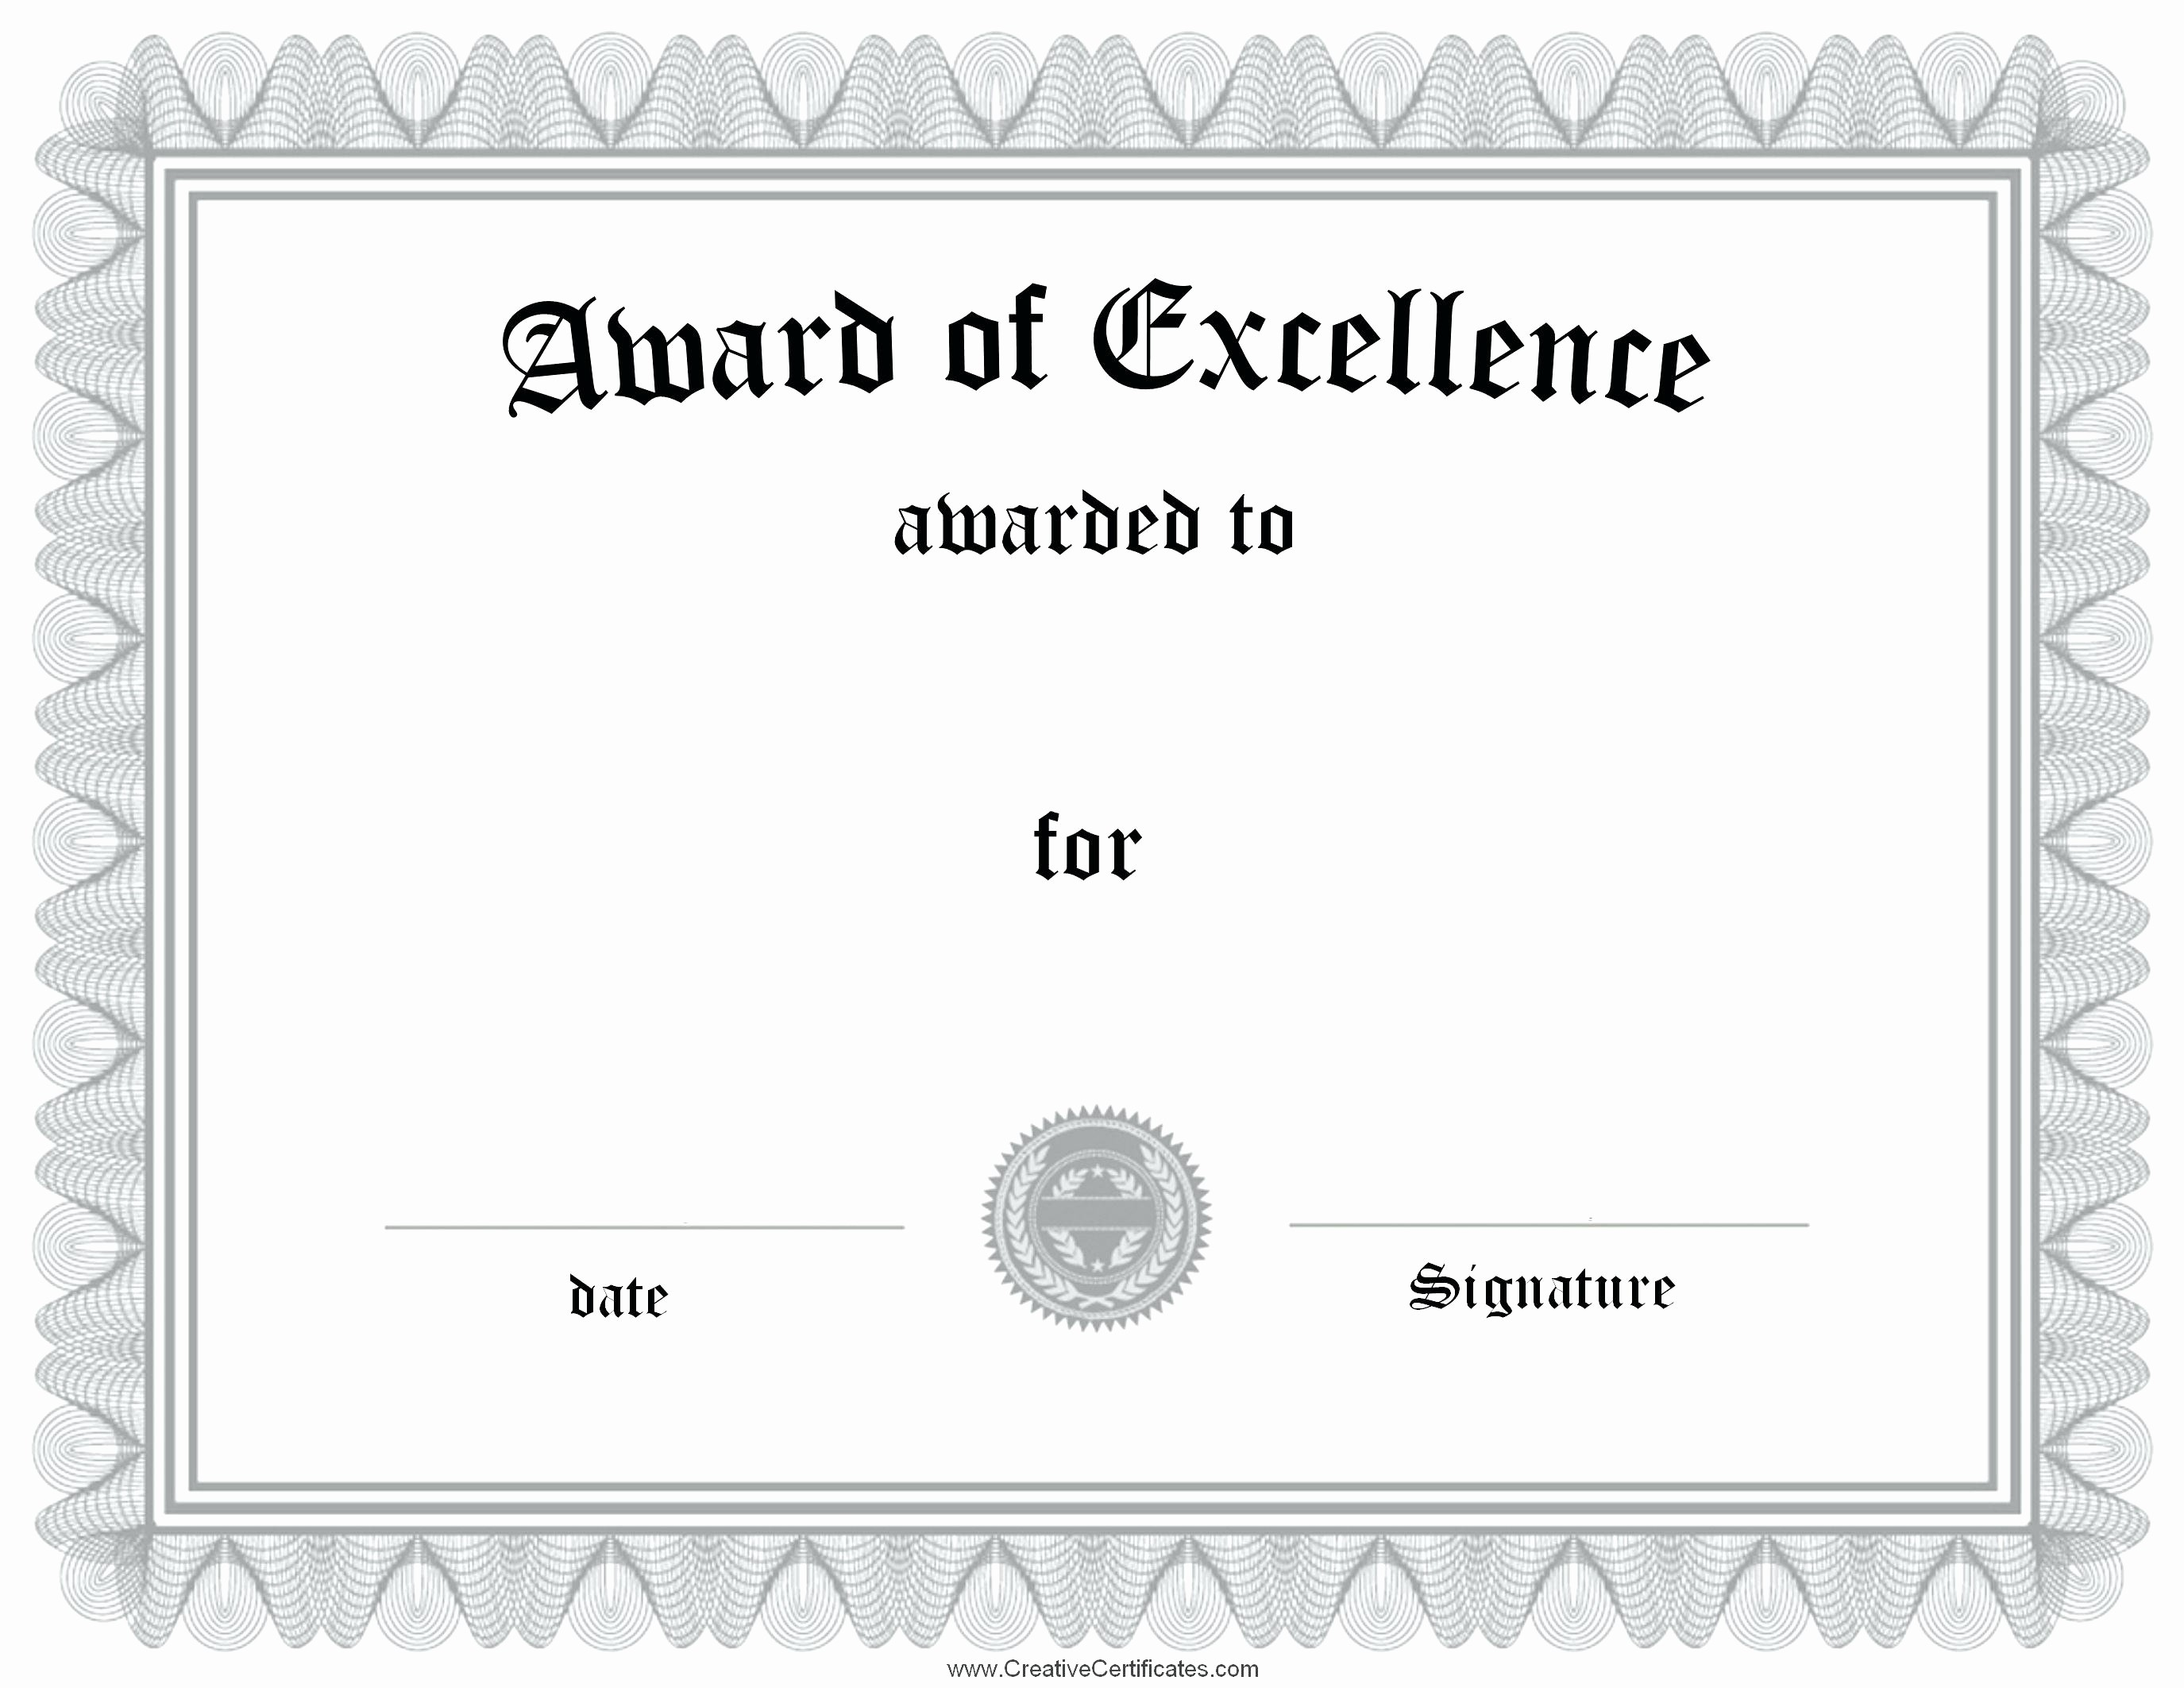 Academic Excellence Award Certificate Template Fresh Template Award Excellence Certificate Template